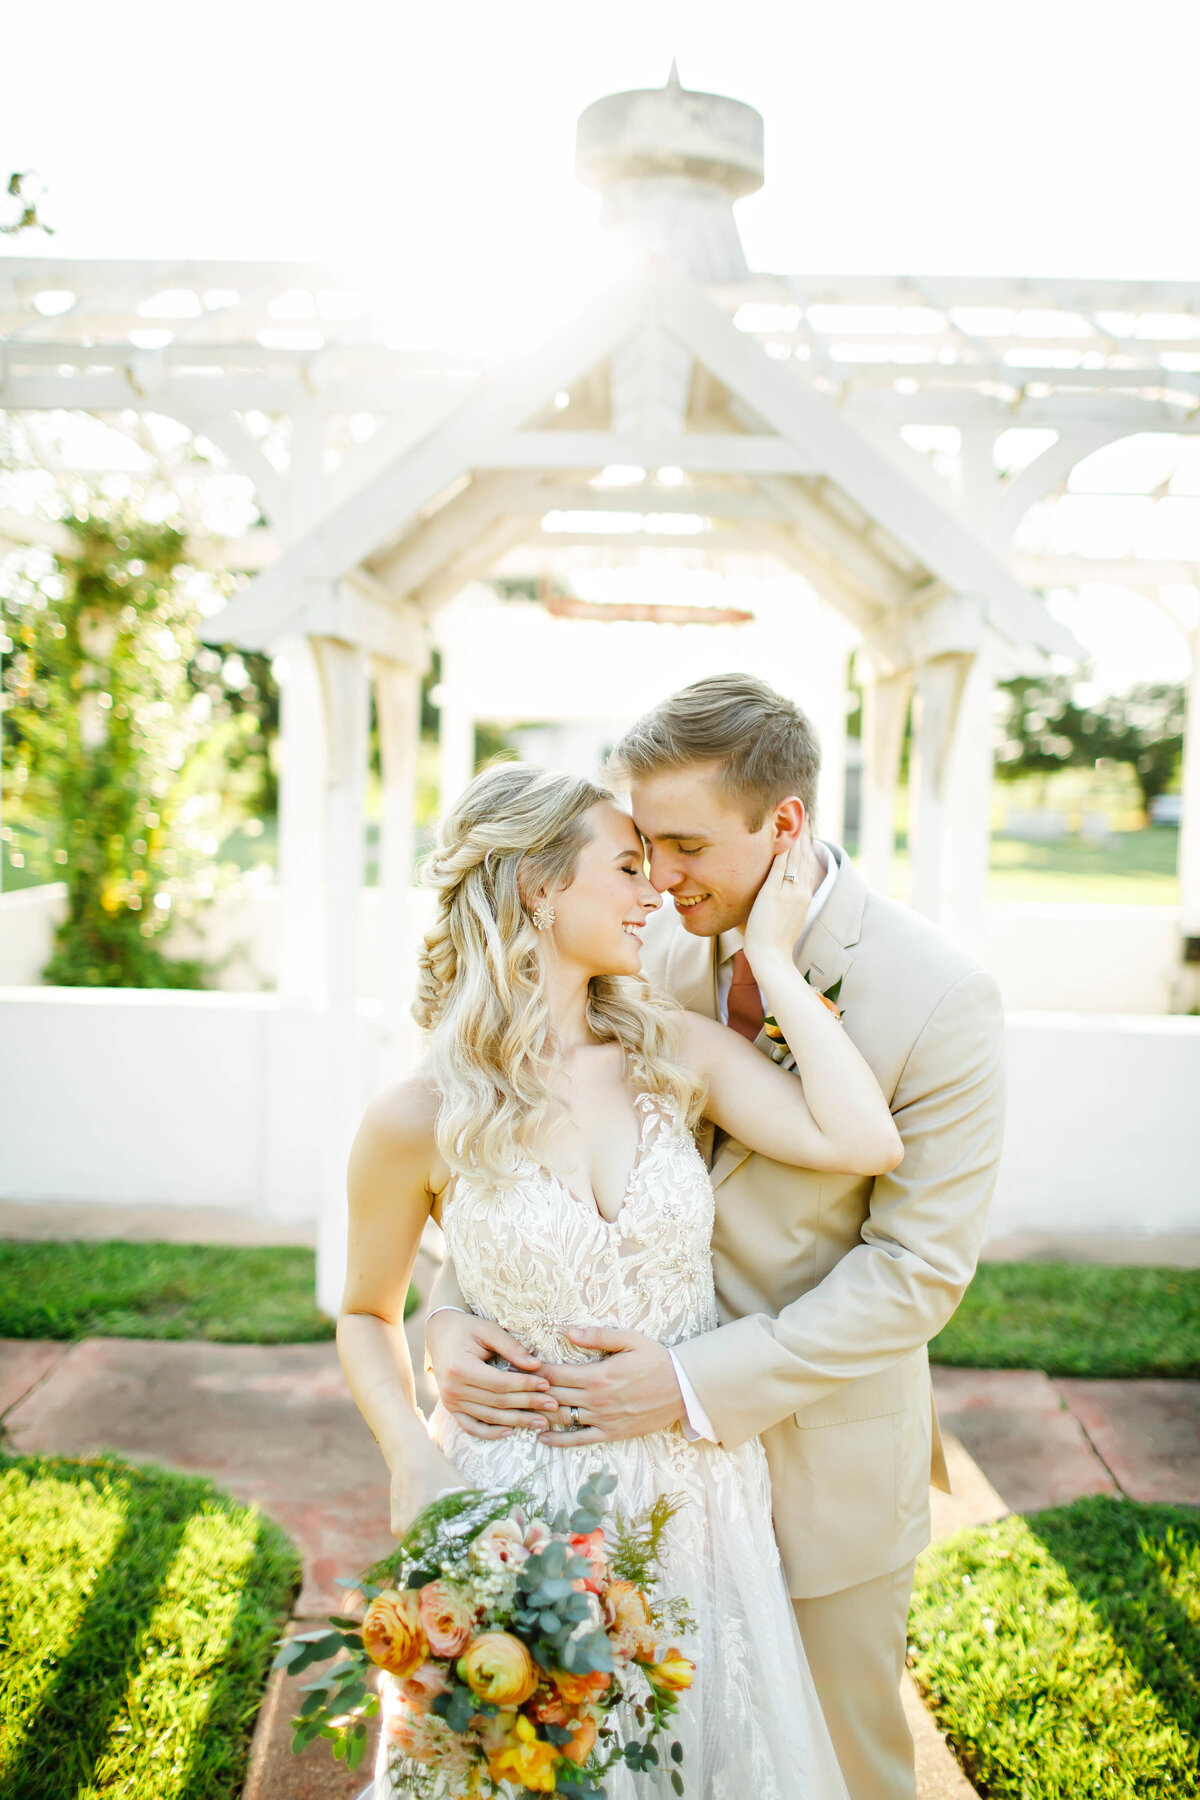 A beautiful bride and groom on wedding day. Standing in front of the Greenhouse Arbor at the Grand Texana. The bride is leaning into the groom and holding her bouquet